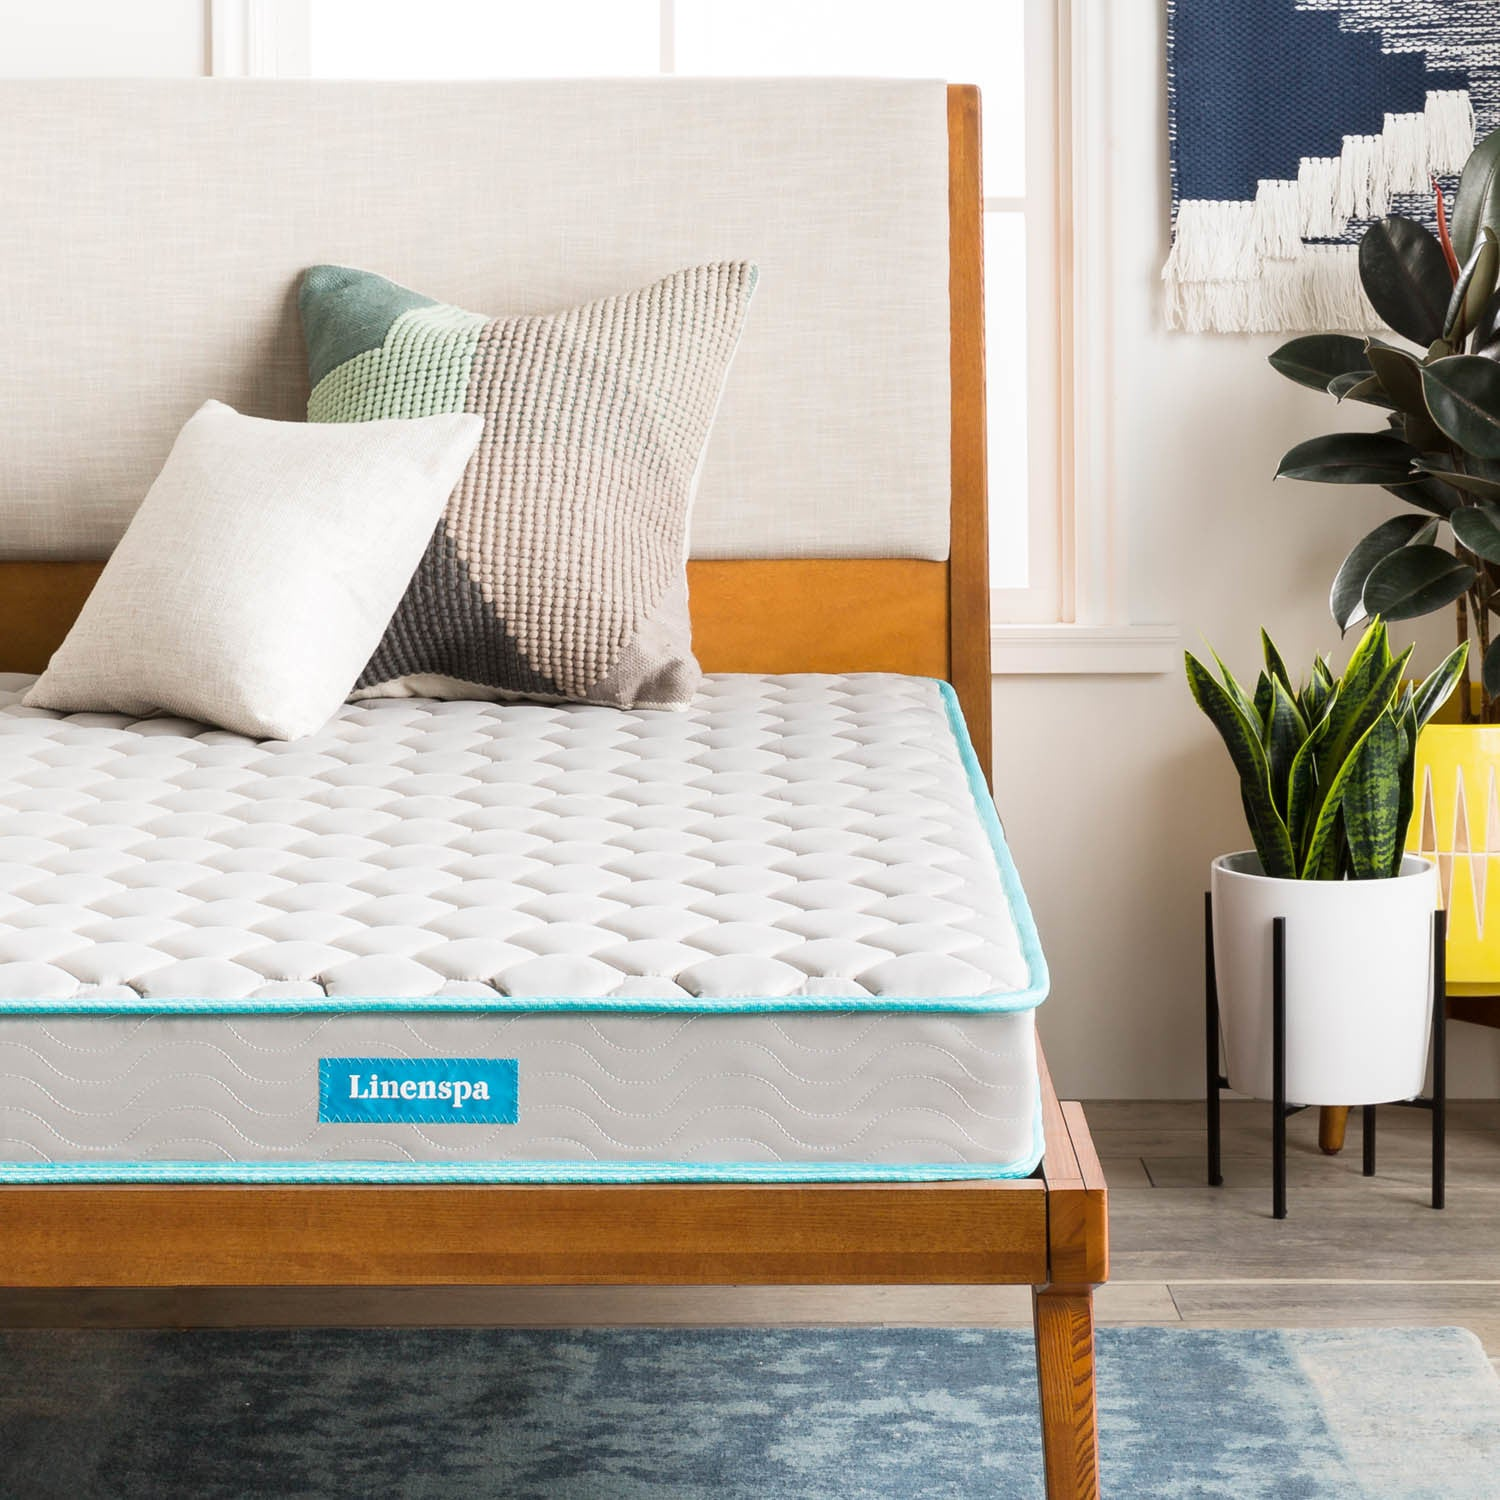 Shop LINENSPA 6-inch Twin Innerspring Mattress - On Sale - Free Shipping  Today - Overstock.com - 10573714